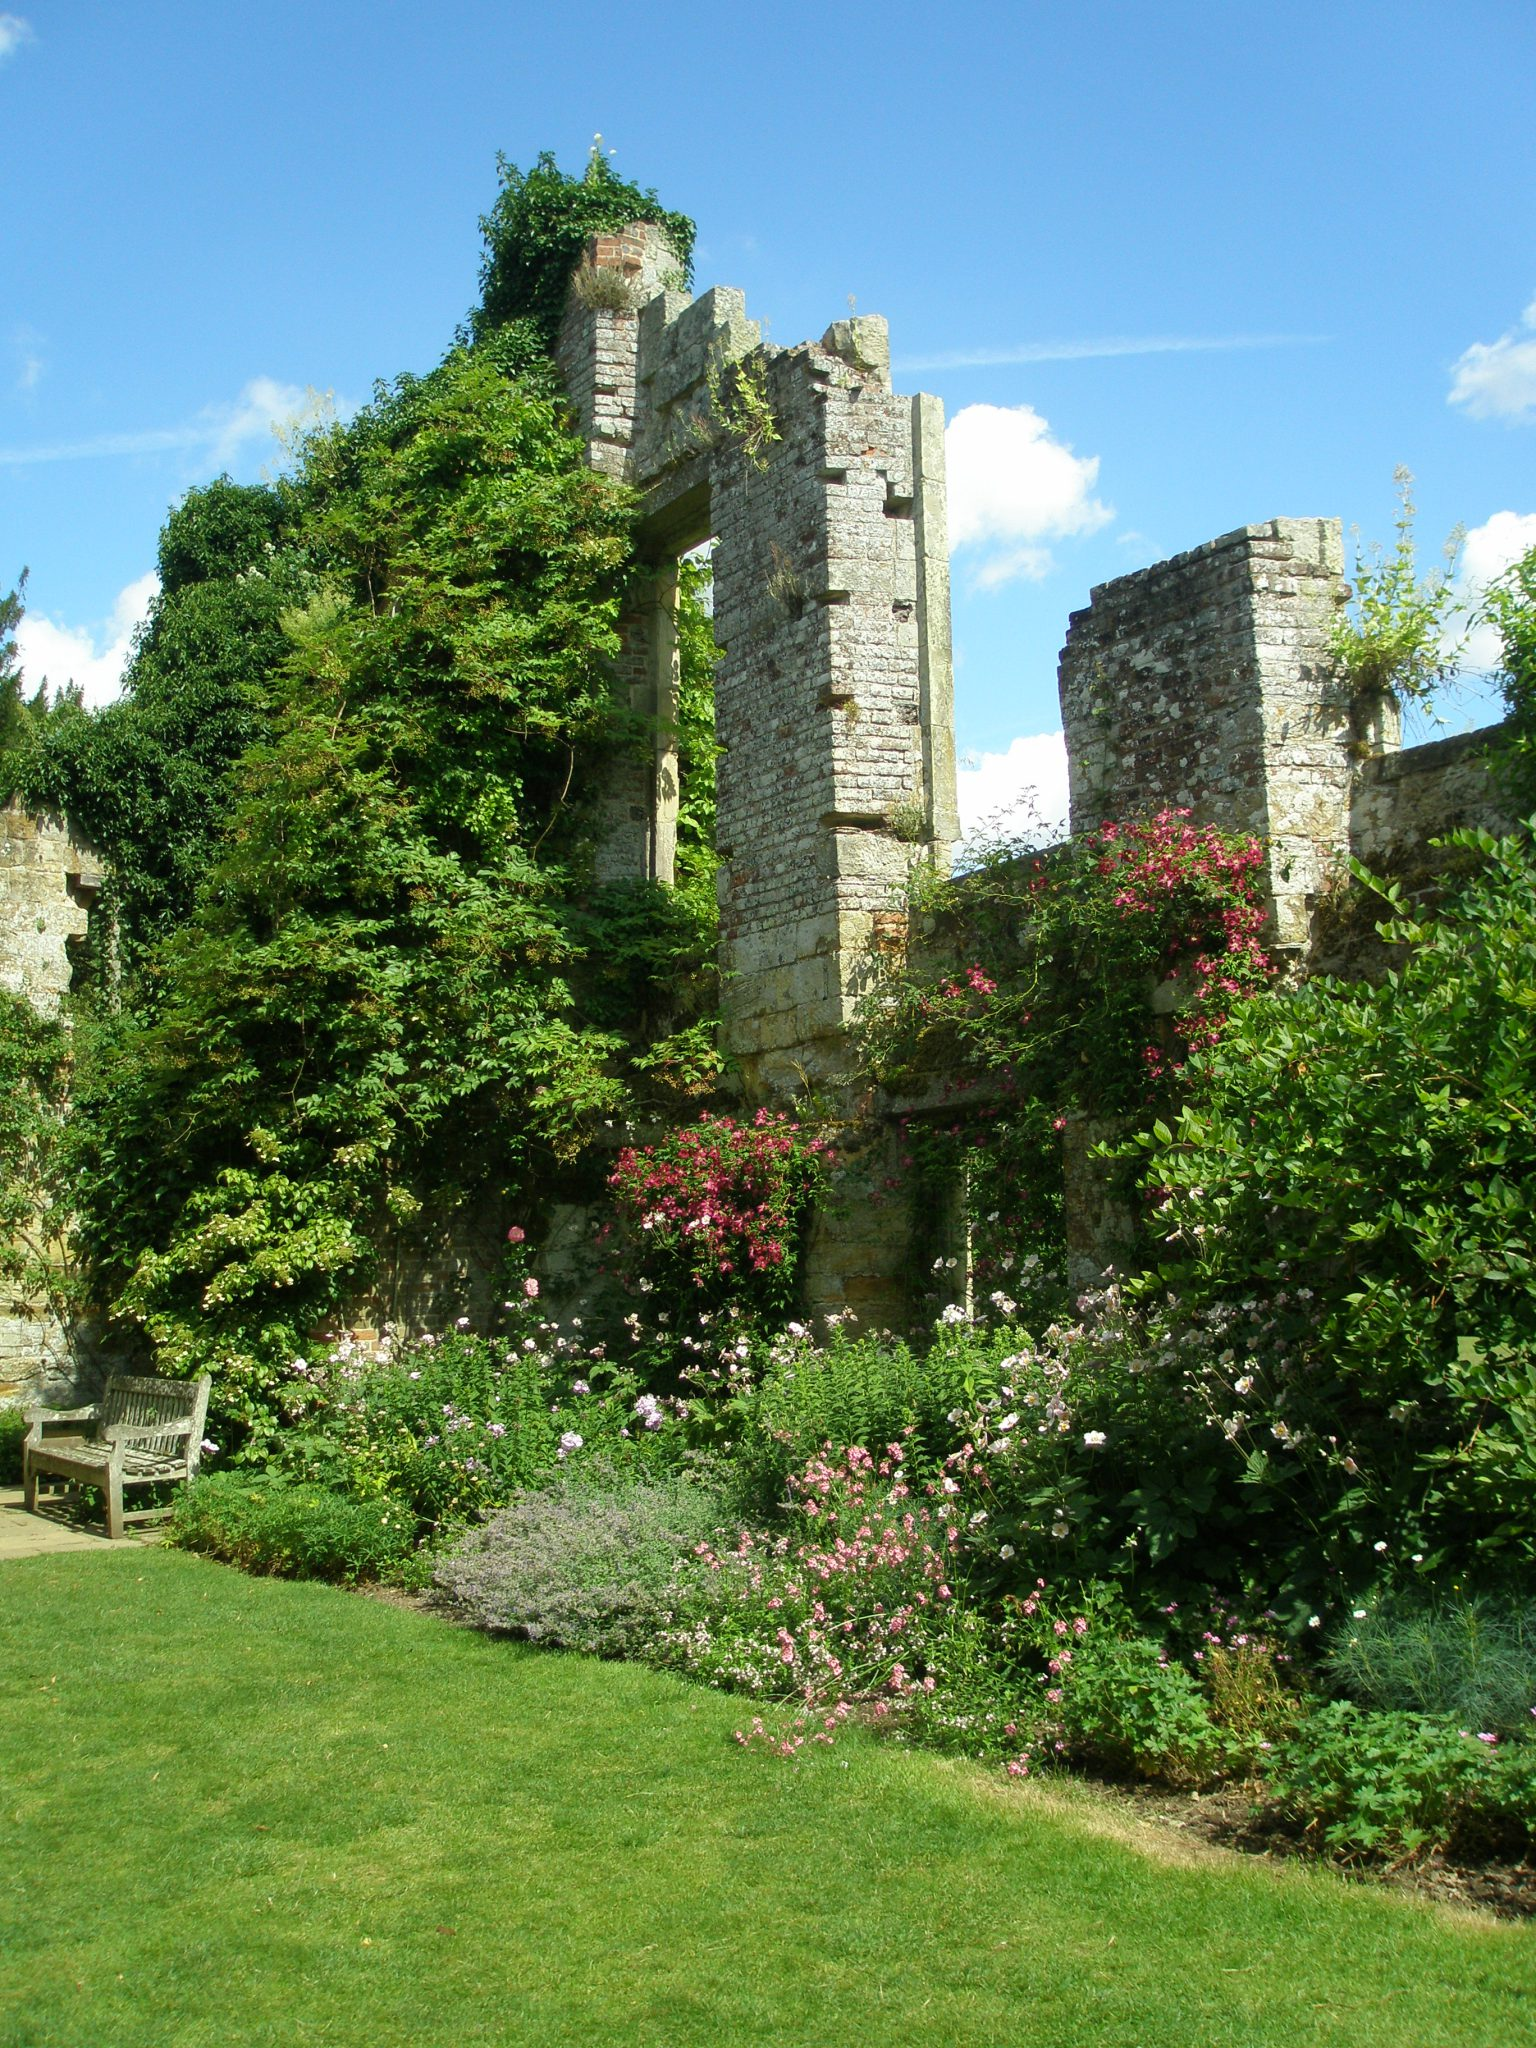 Inside the Old Castle's small, walled garden